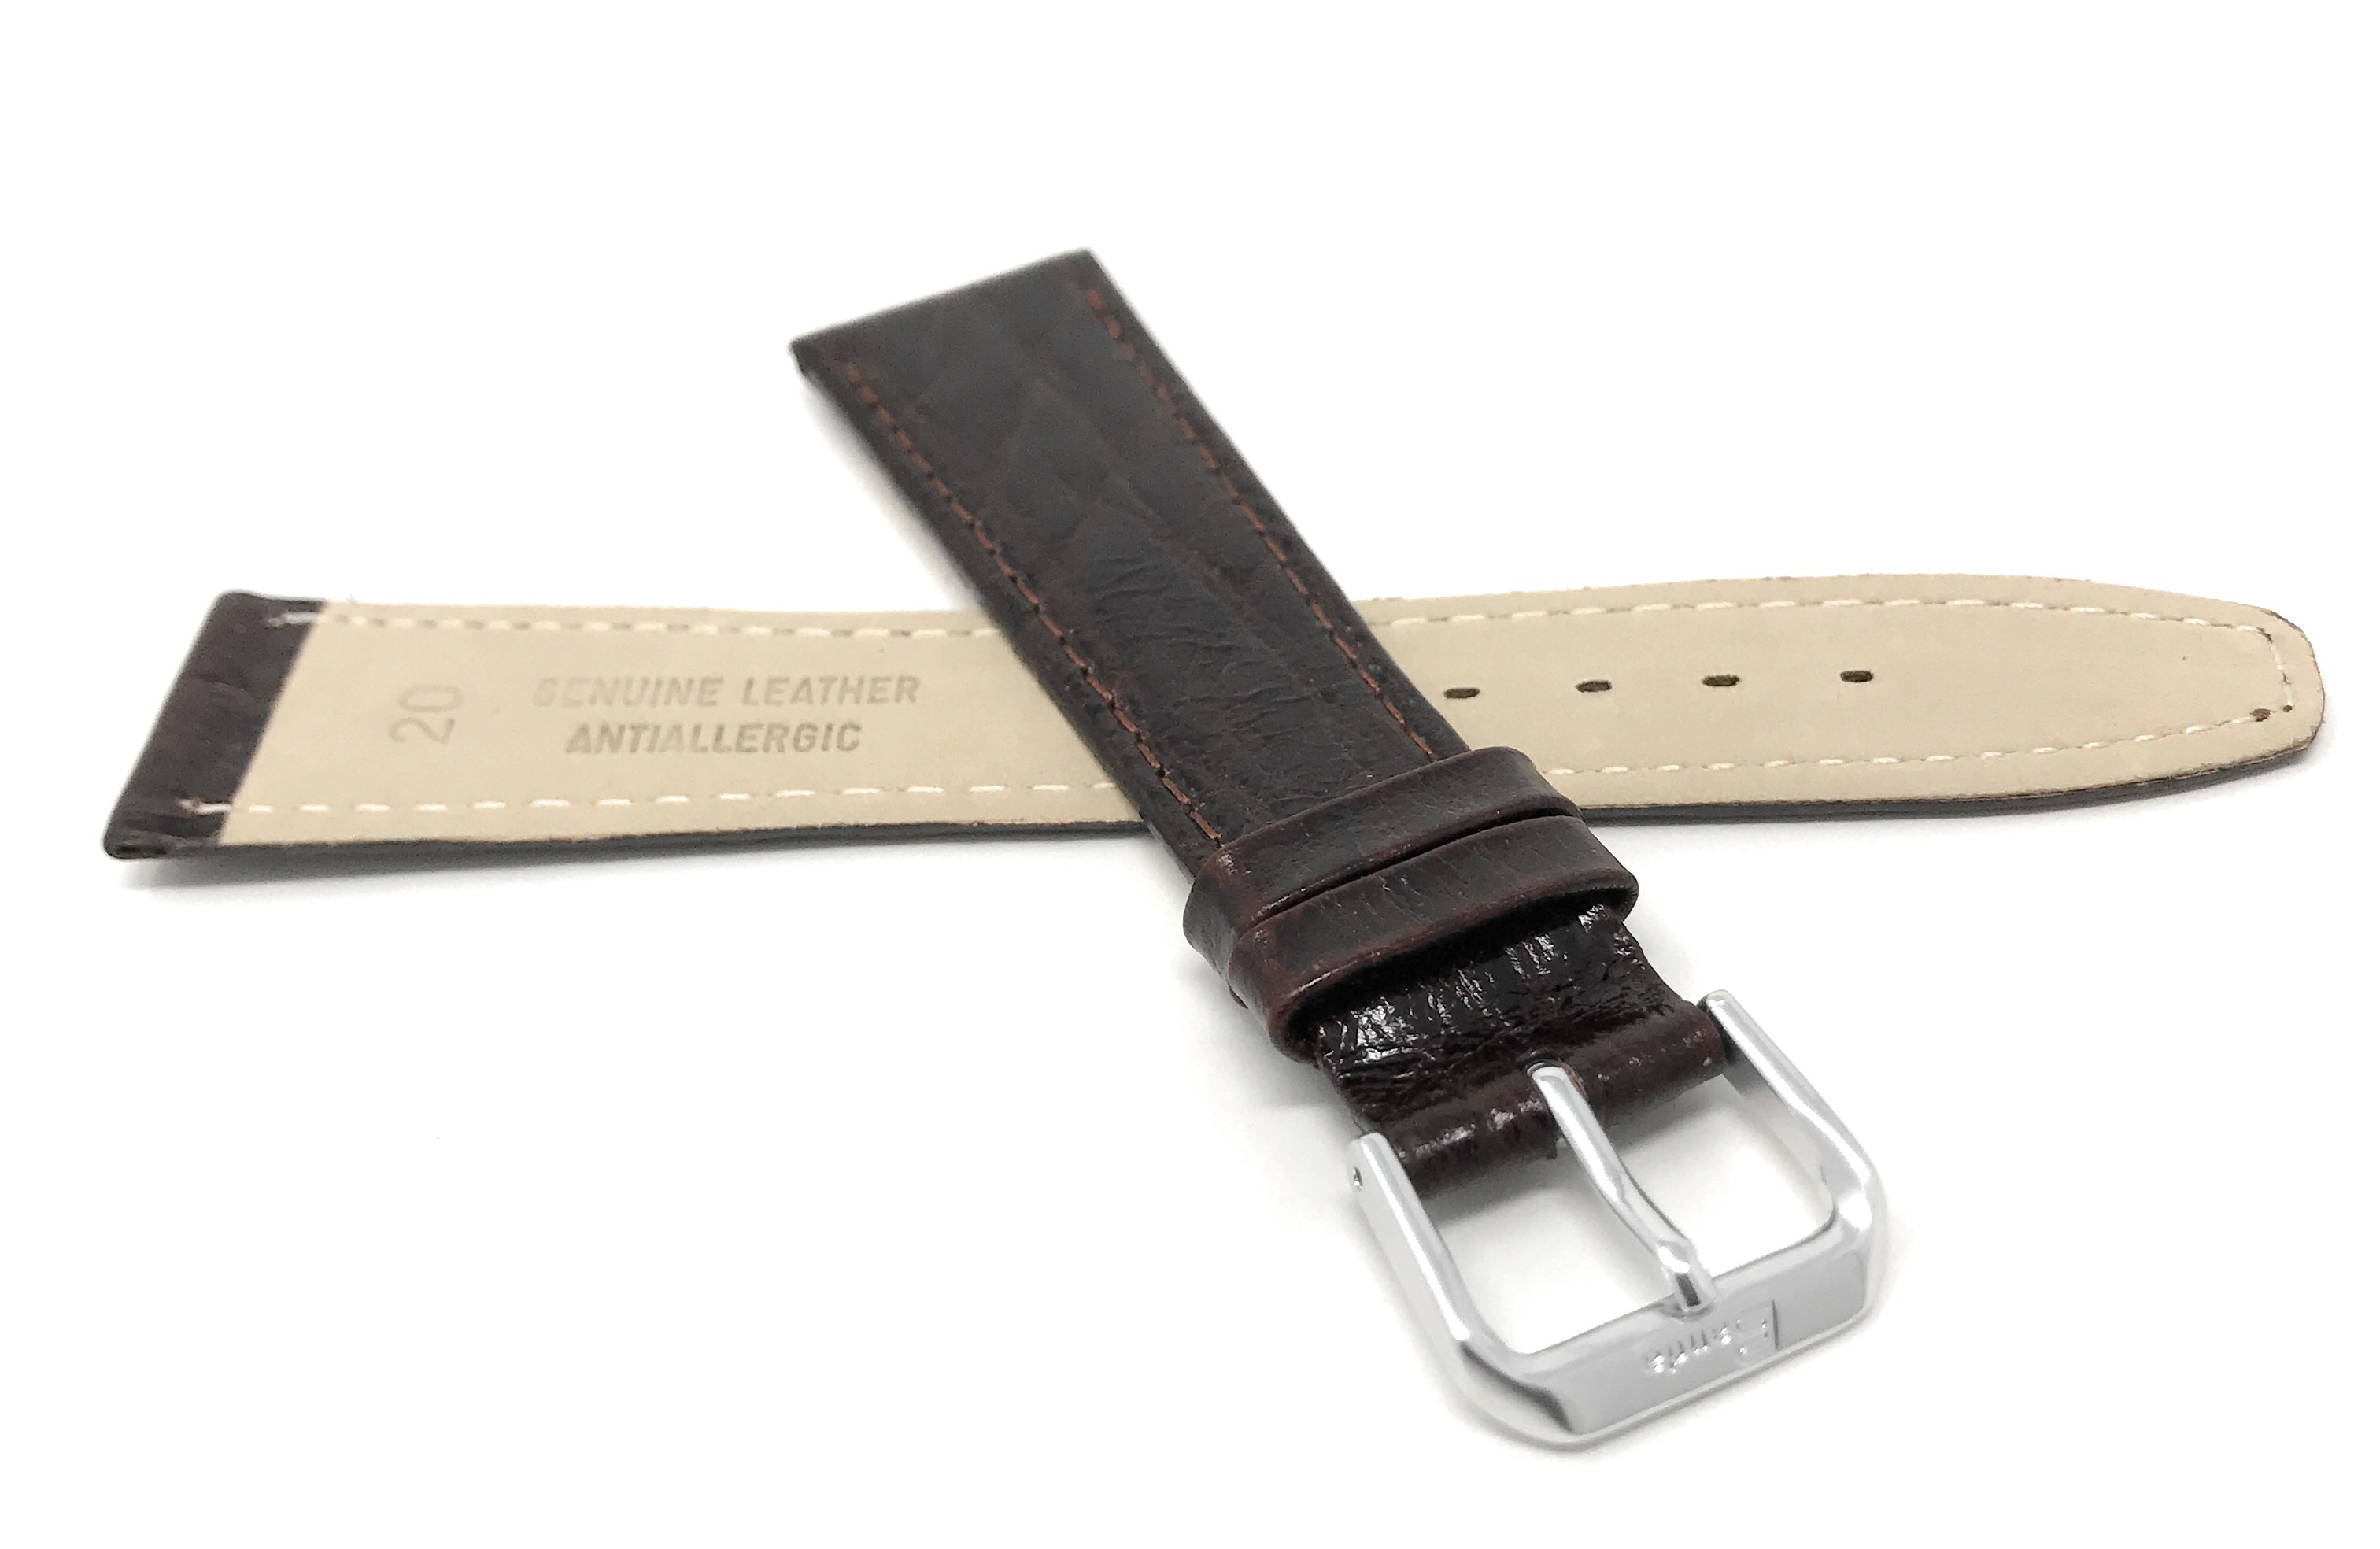 Bandini-Watch-Band-Leather-Strap-Semi-Glossy-10mm-20mm-Extra-Long-Also thumbnail 16